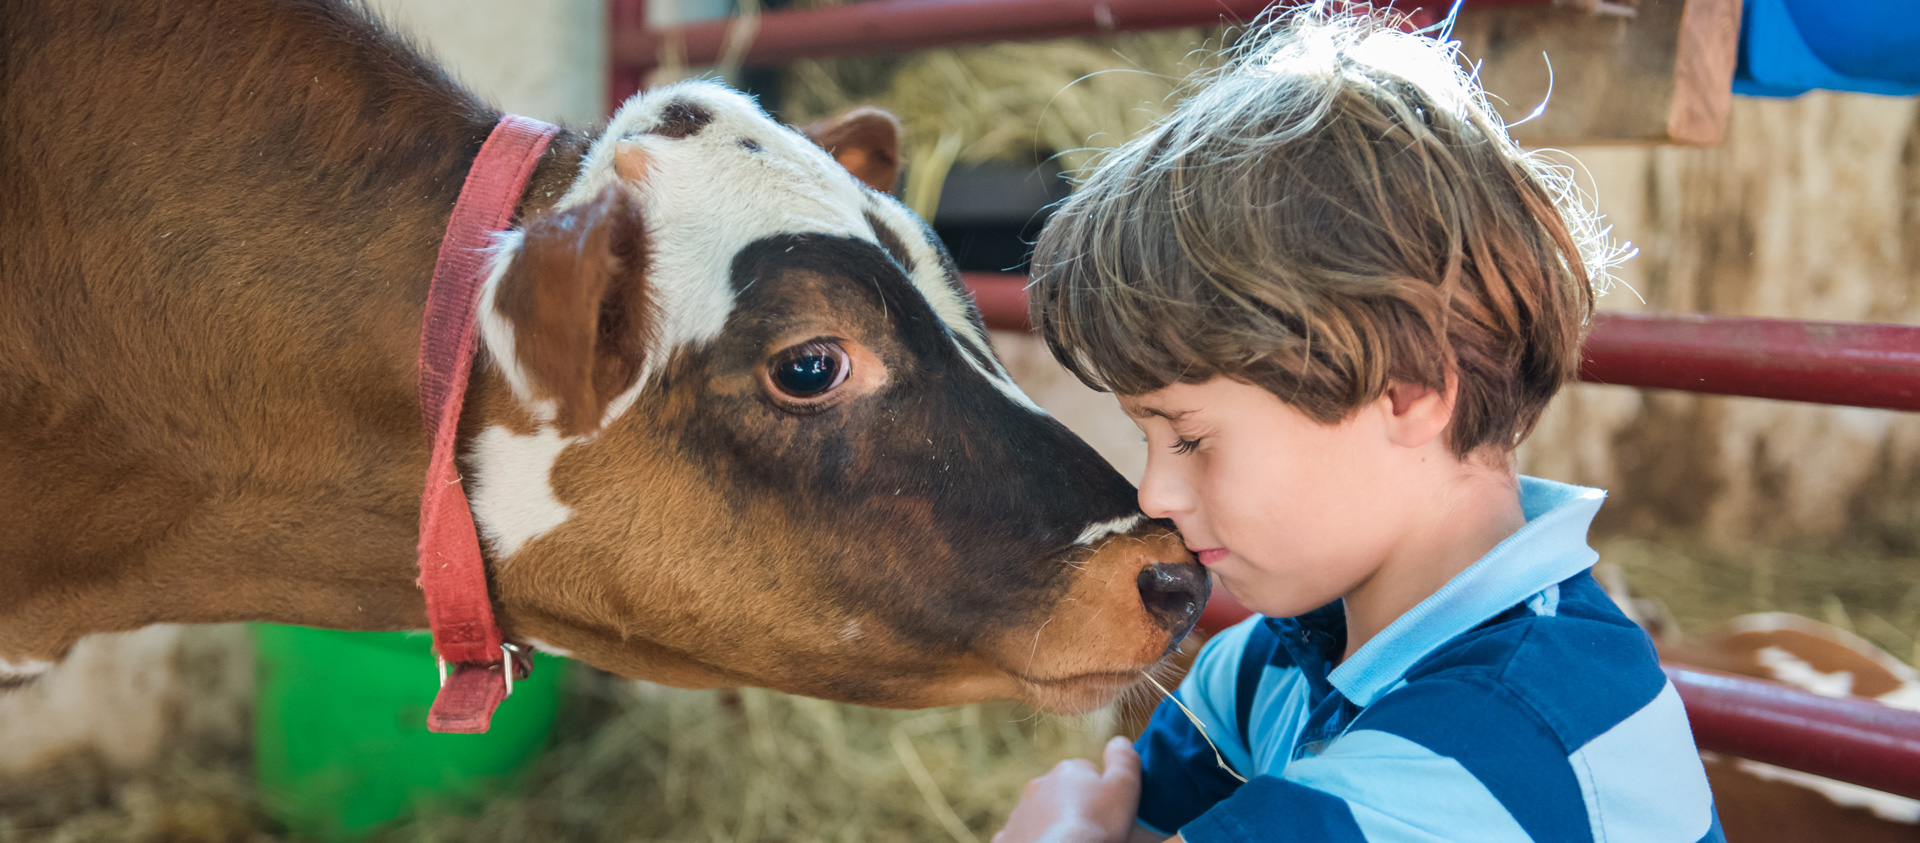 A cow lovingly nuzzles a young boy's face